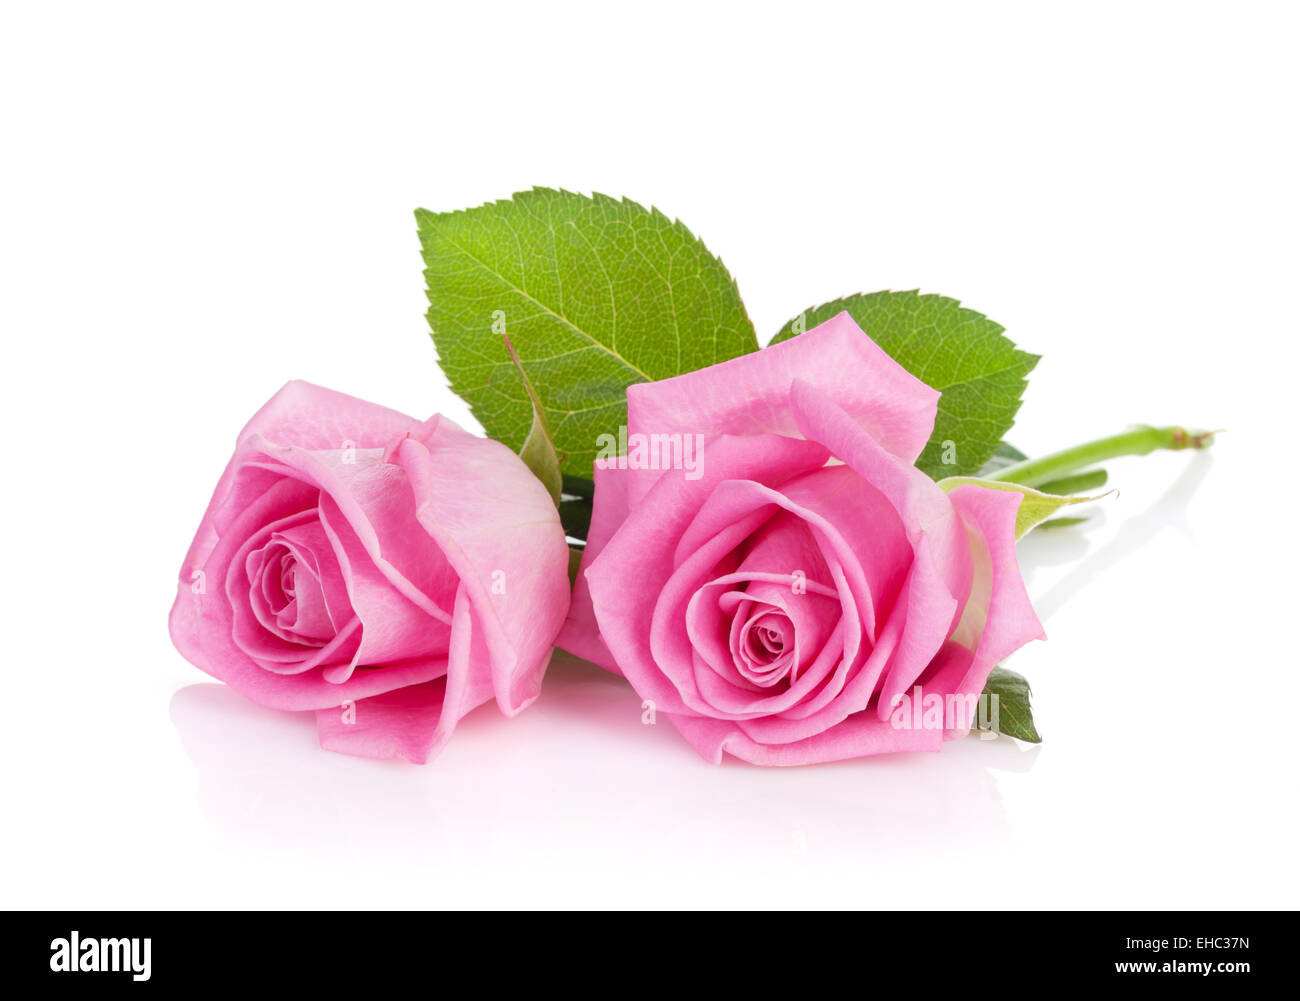 Two Pink Rose Flowers Isolated On White Background Stock Photo